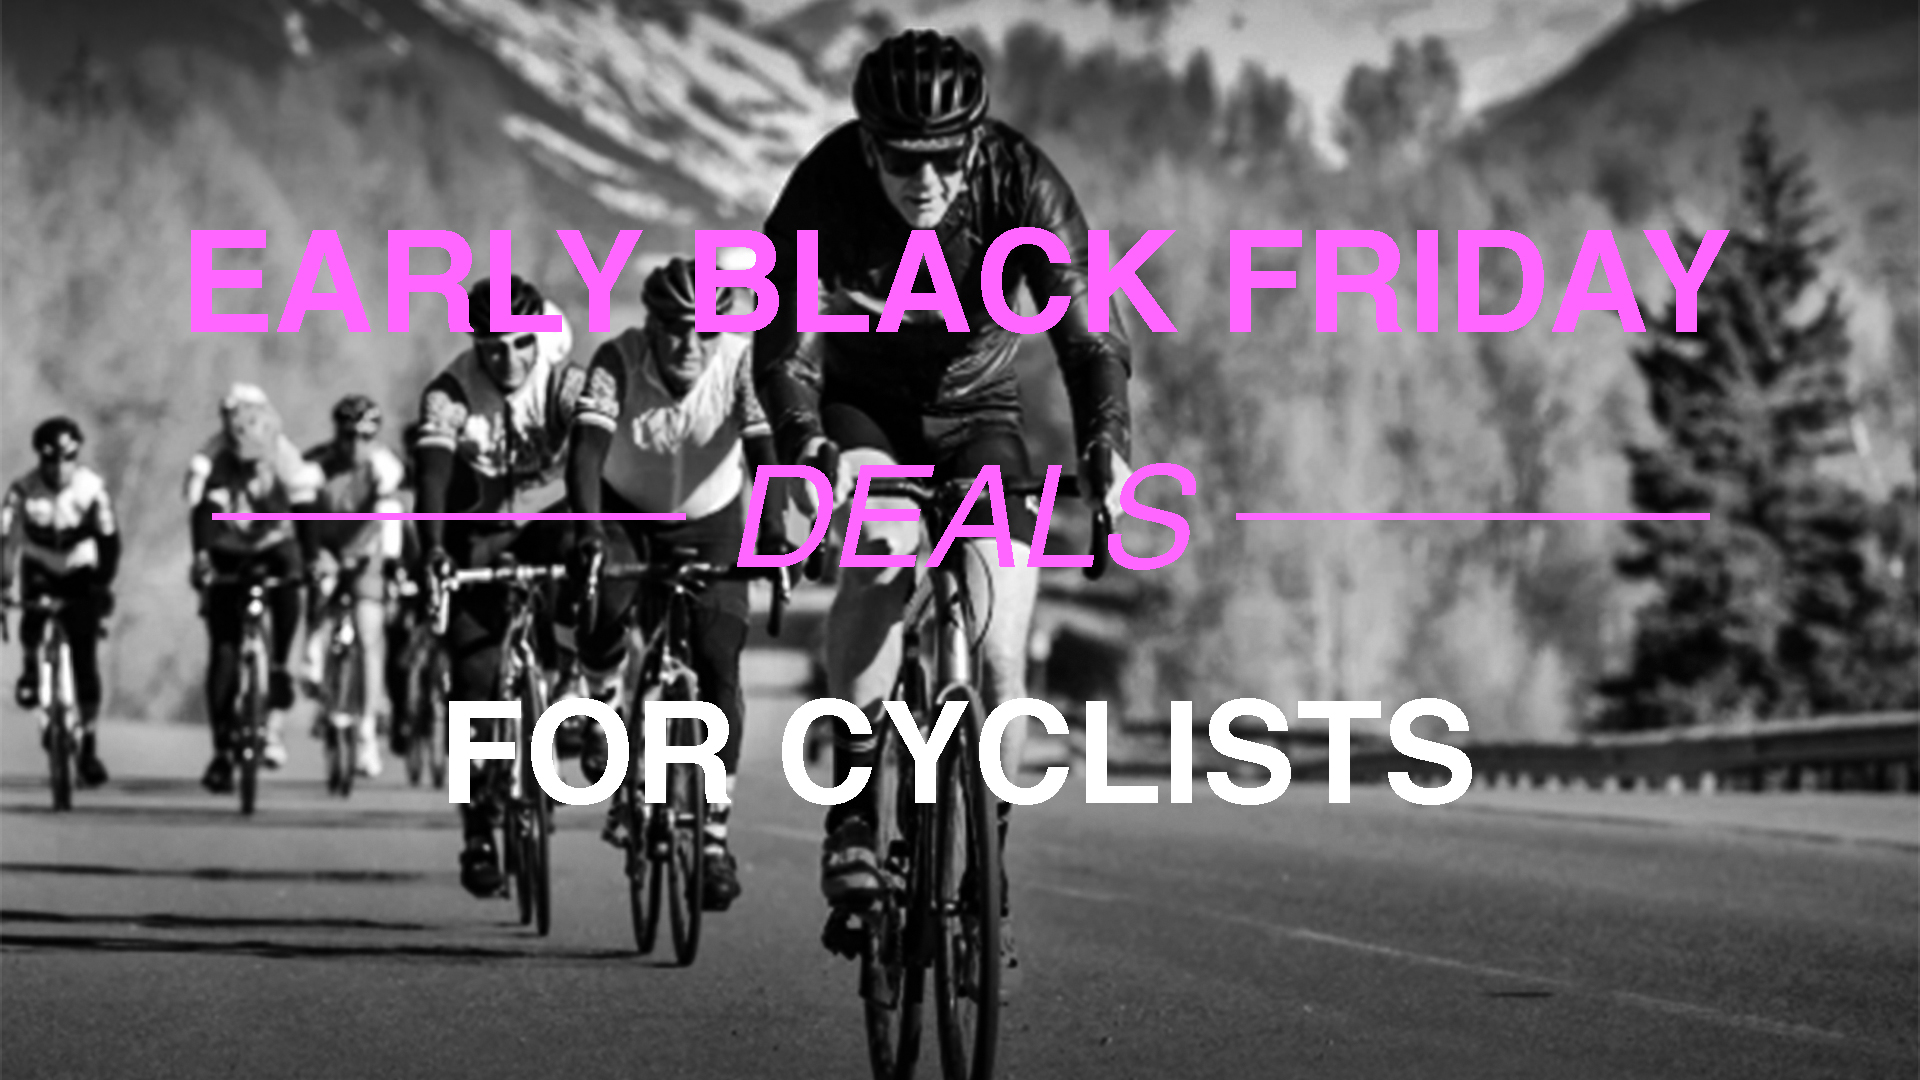 No need to wait until Black Friday or Cyber Monday. These great deals are available now.